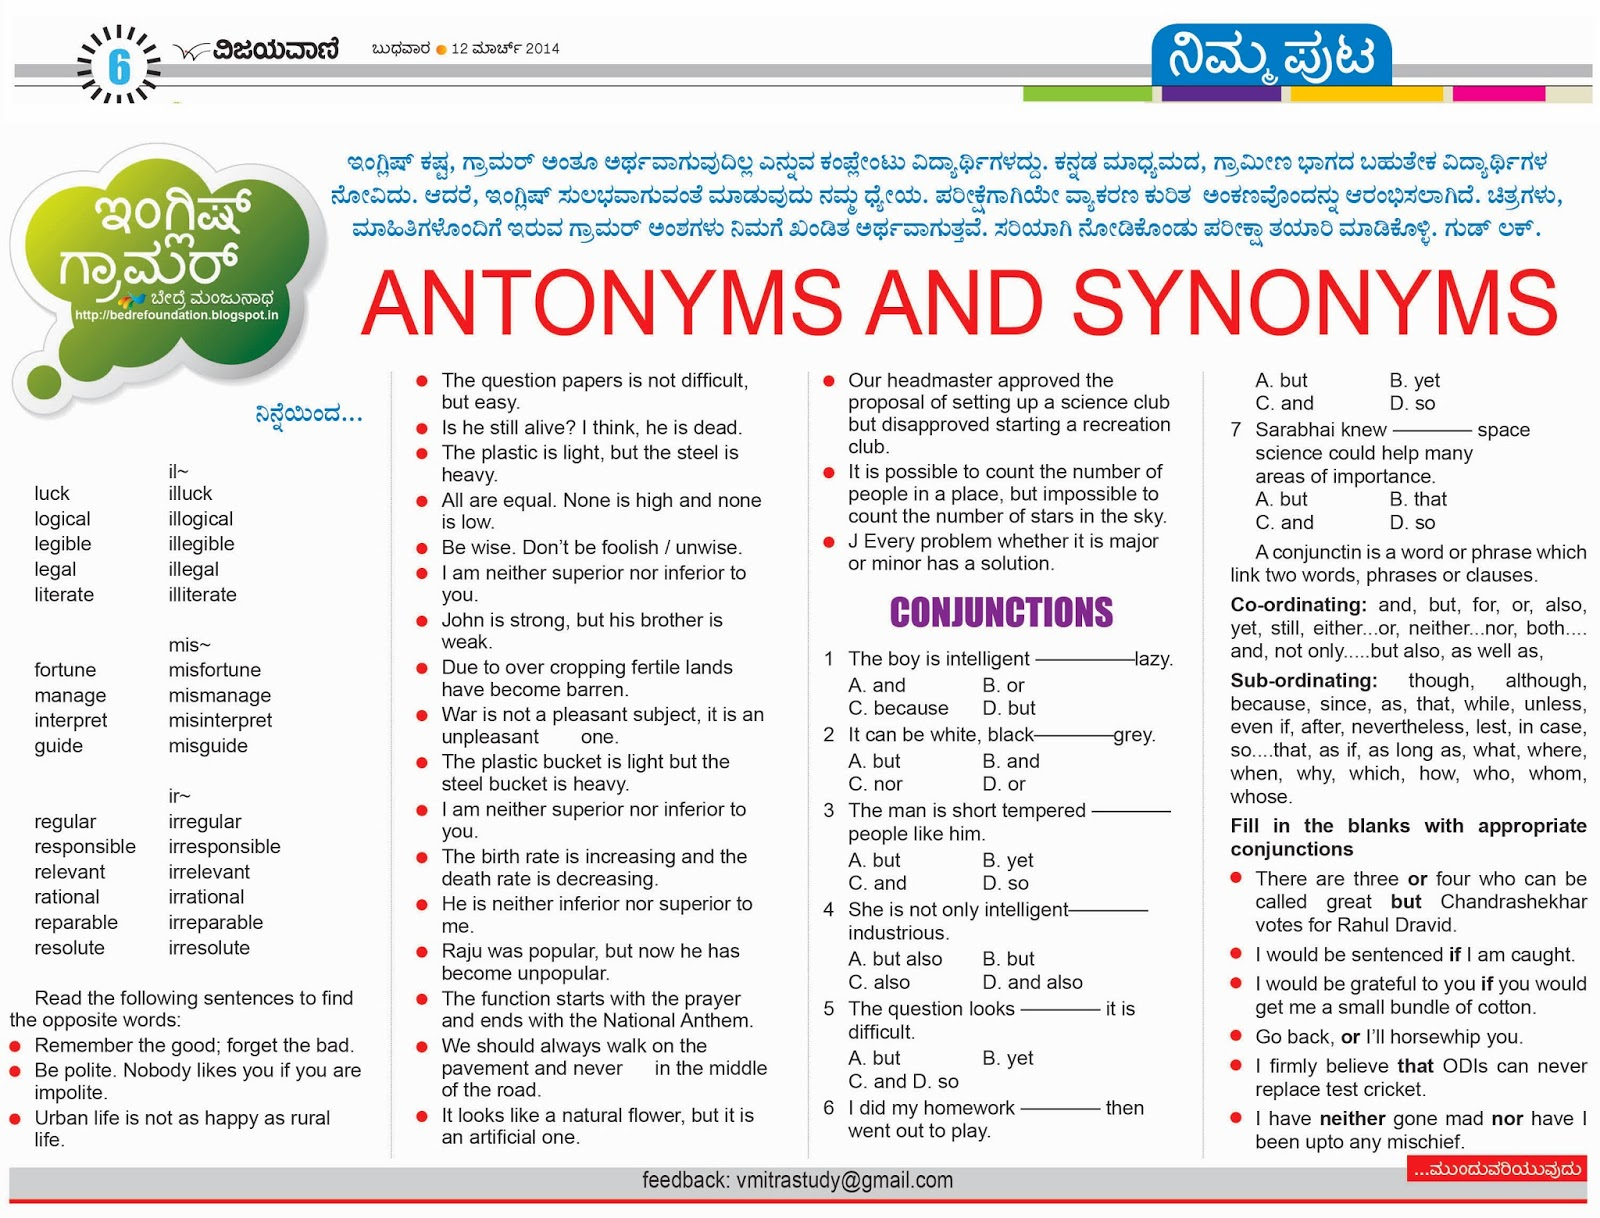 Antonyms And Synonyms Part 2 And